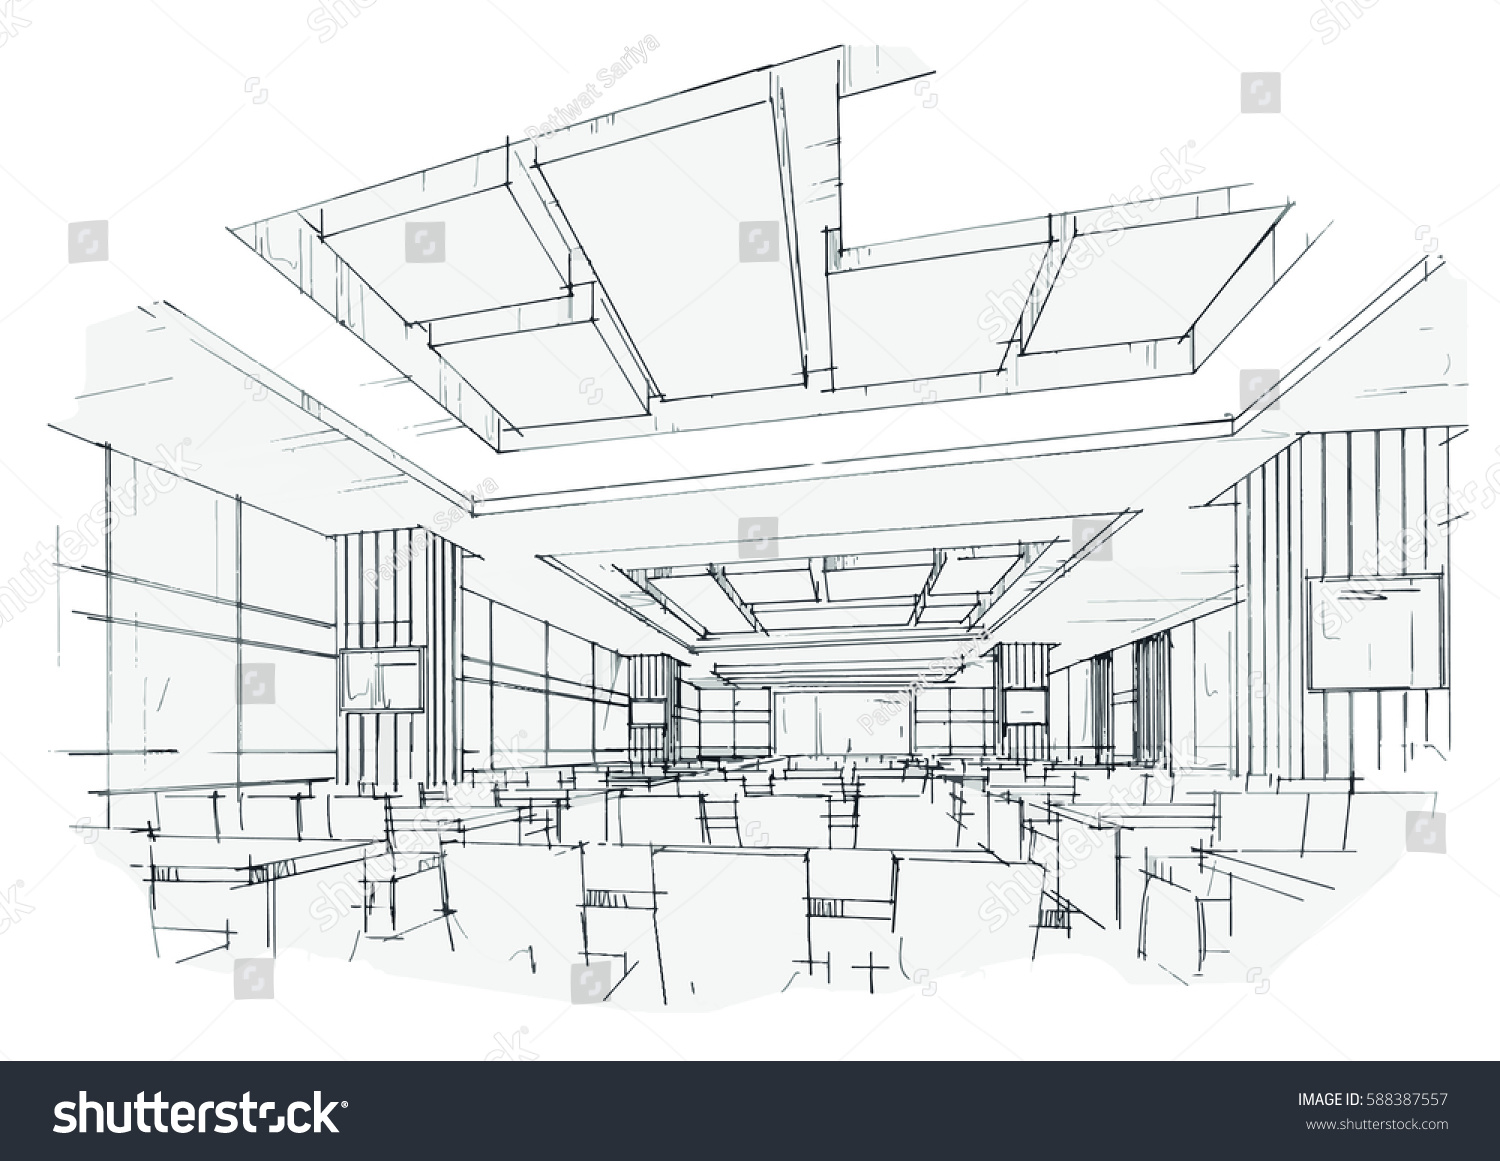 Classroom Design Sketch : Sketch streaks classroom black white interior stock vector